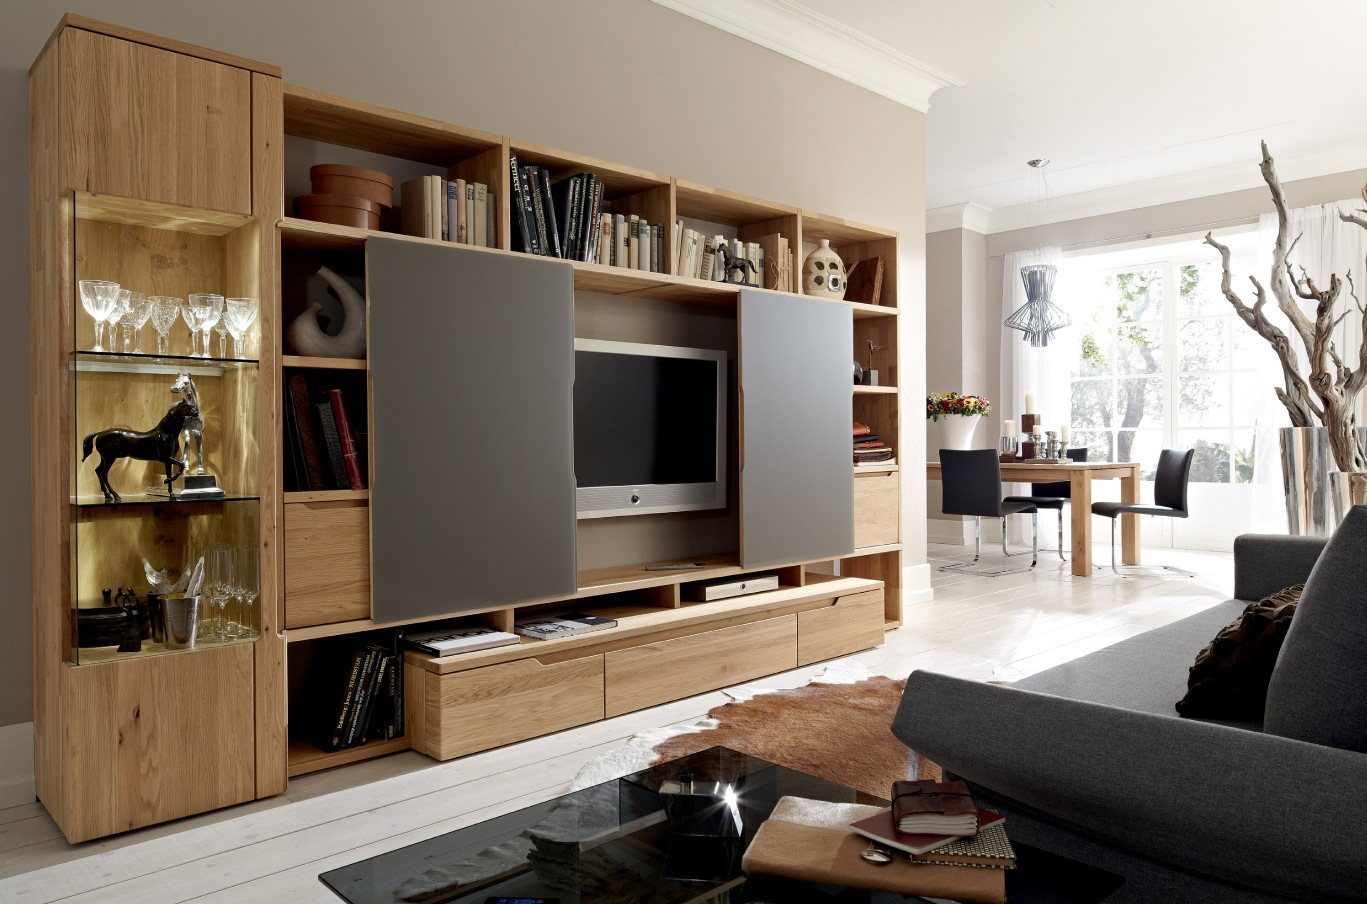 Design Of Tv Cabinet In Living Room Creative Curved White Gloss - Cabinet design for living room